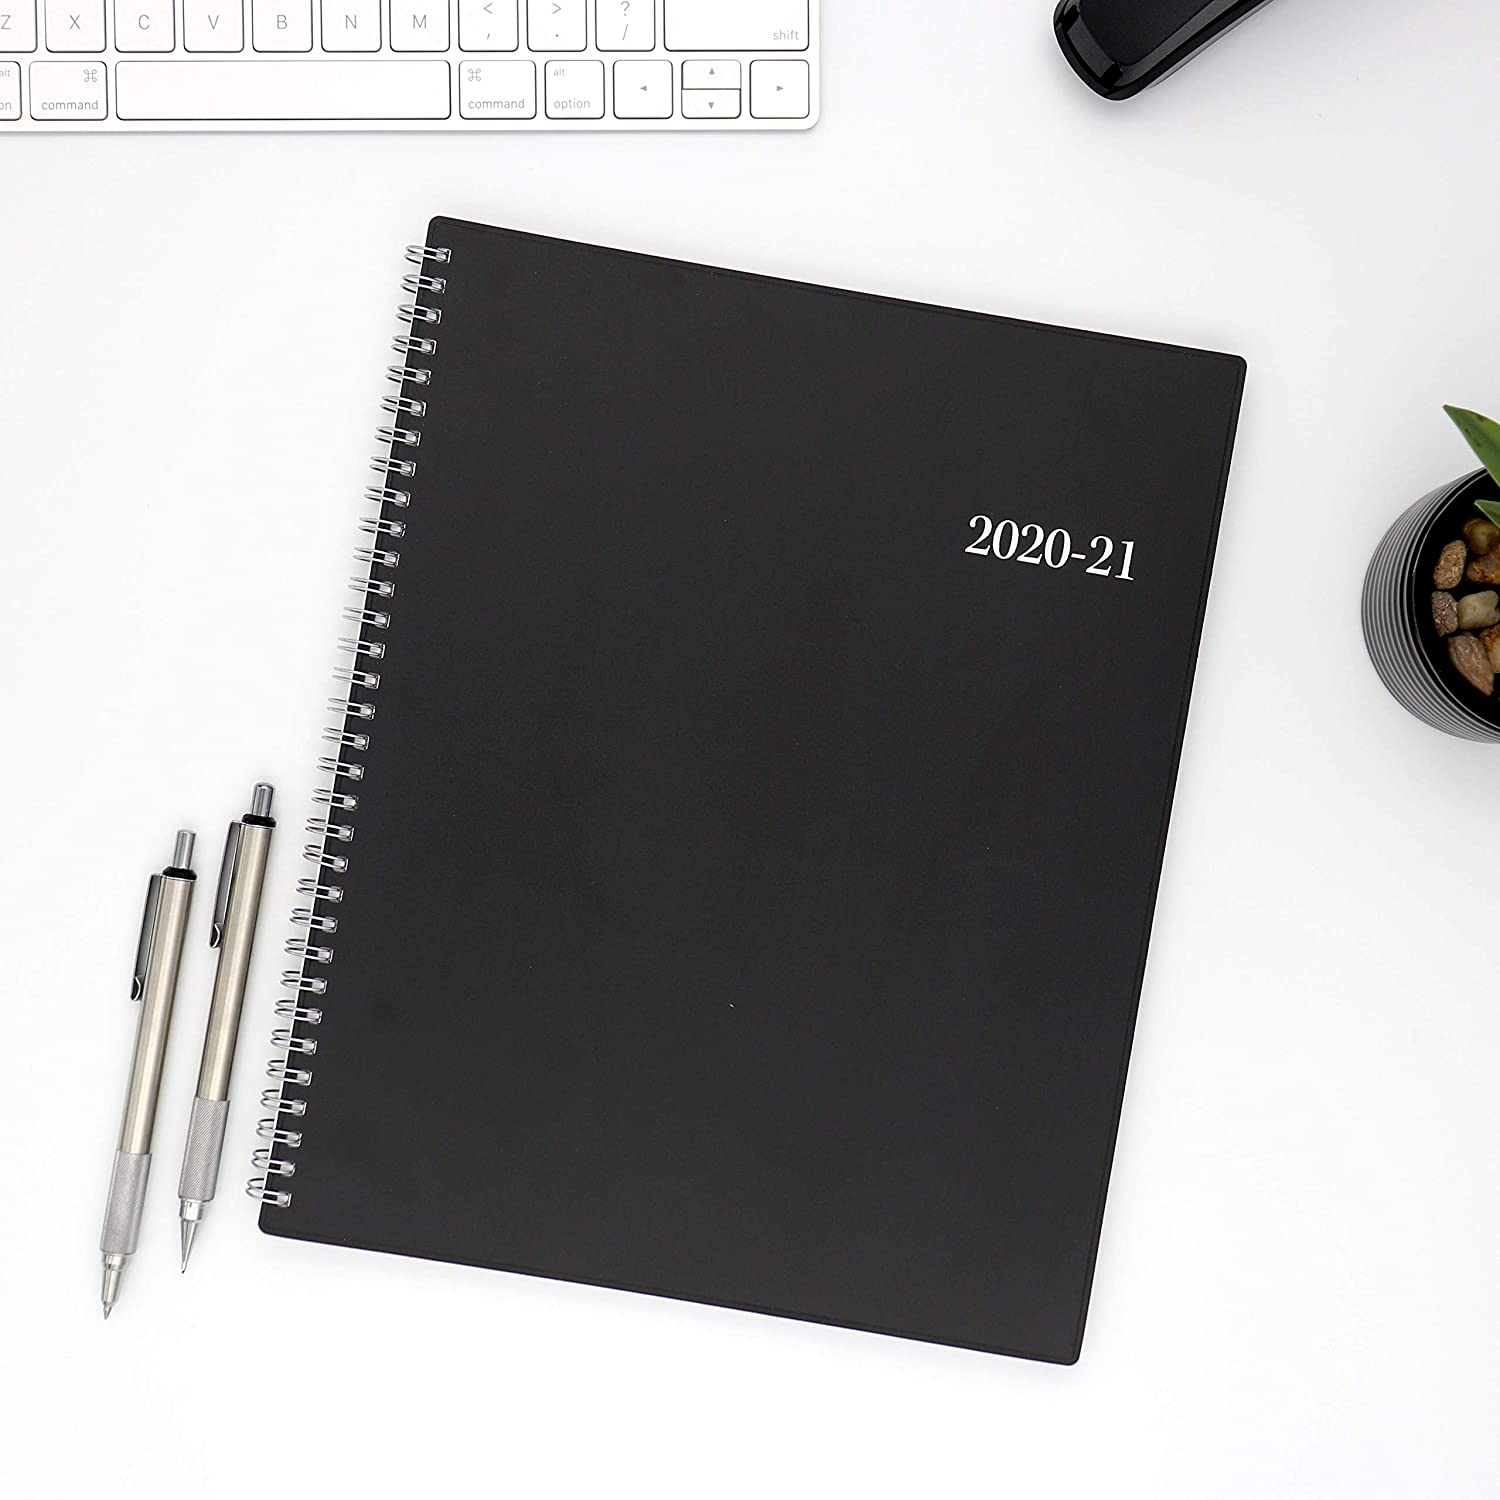 """Blue Sky 2020-2021 Academic Year Weekly & Monthly Planner, Flexible Cover, Twin-Wire Binding, 8.5"""" x 11"""", Enterprise (118062) : Office Products"""